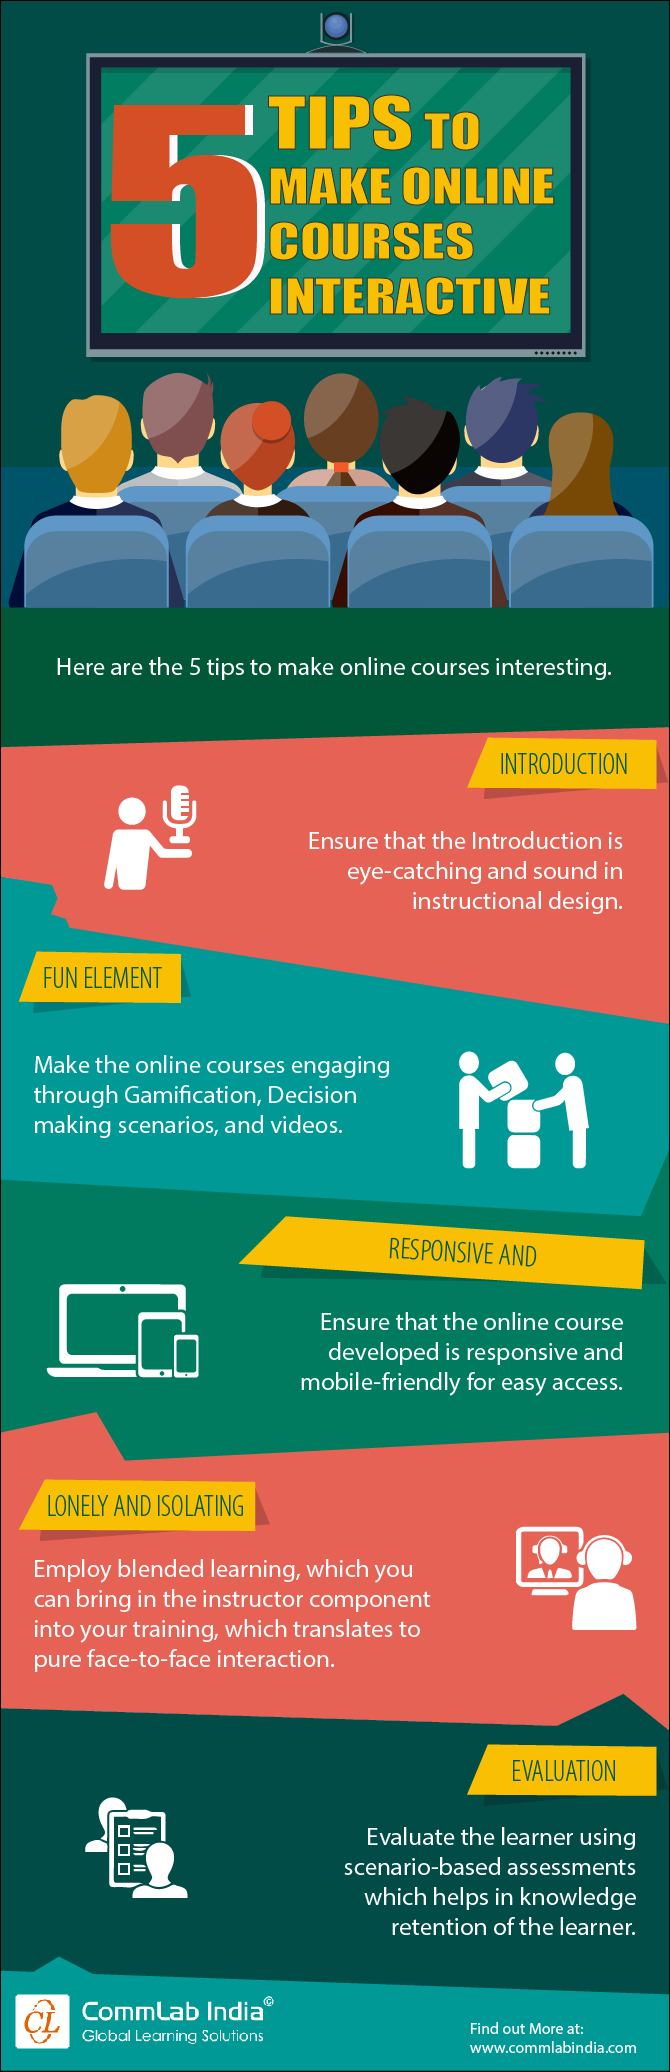 5 Tips to Make Online Courses Interactive [Infographic]